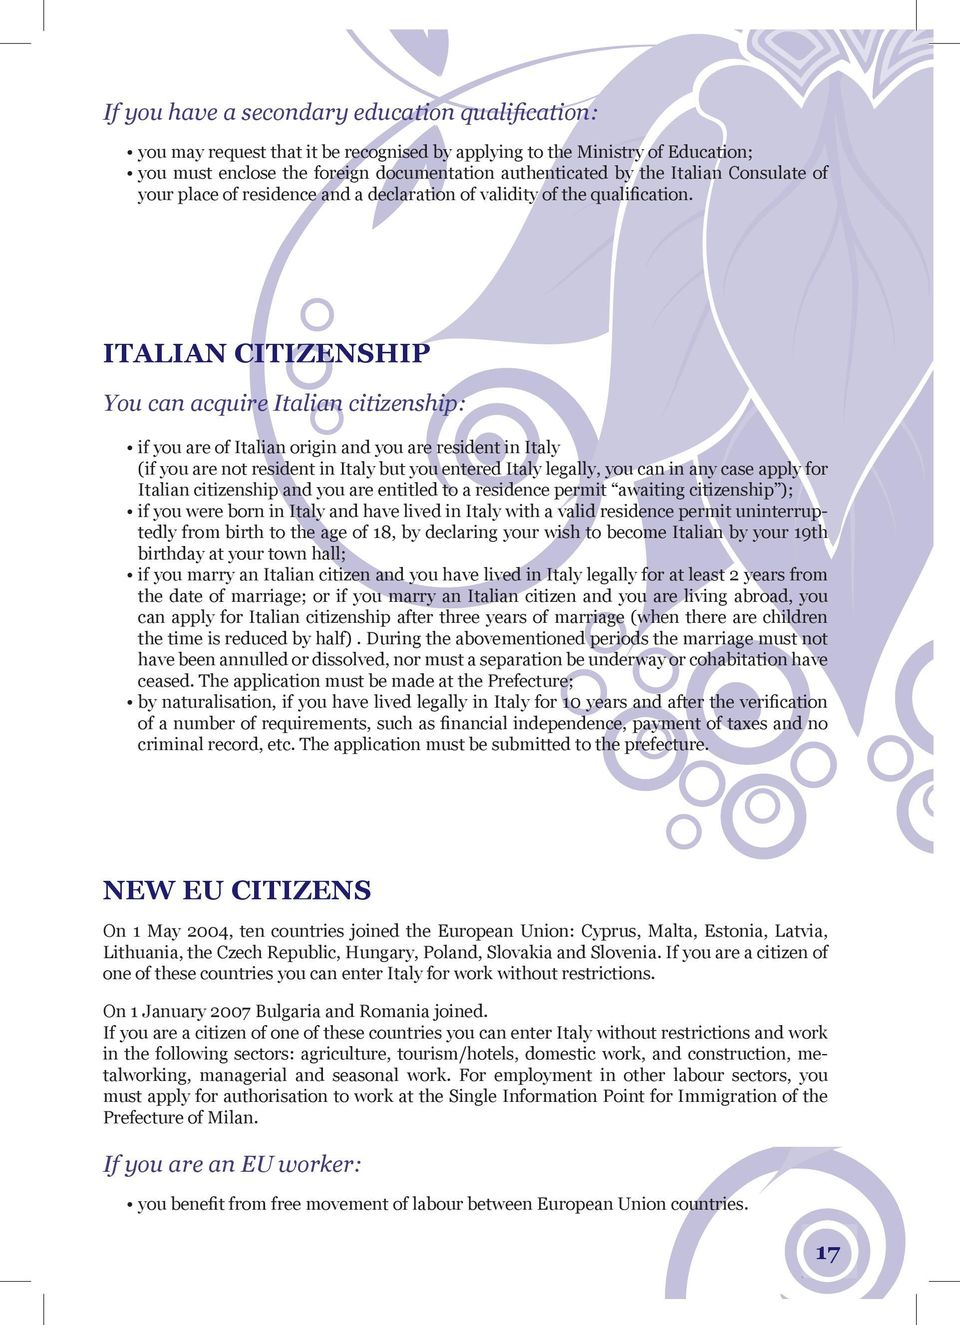 ITALIAN CITIZENSHIP You can acquire Italian citizenship: if you are of Italian origin and you are resident in Italy (if you are not resident in Italy but you entered Italy legally, you can in any